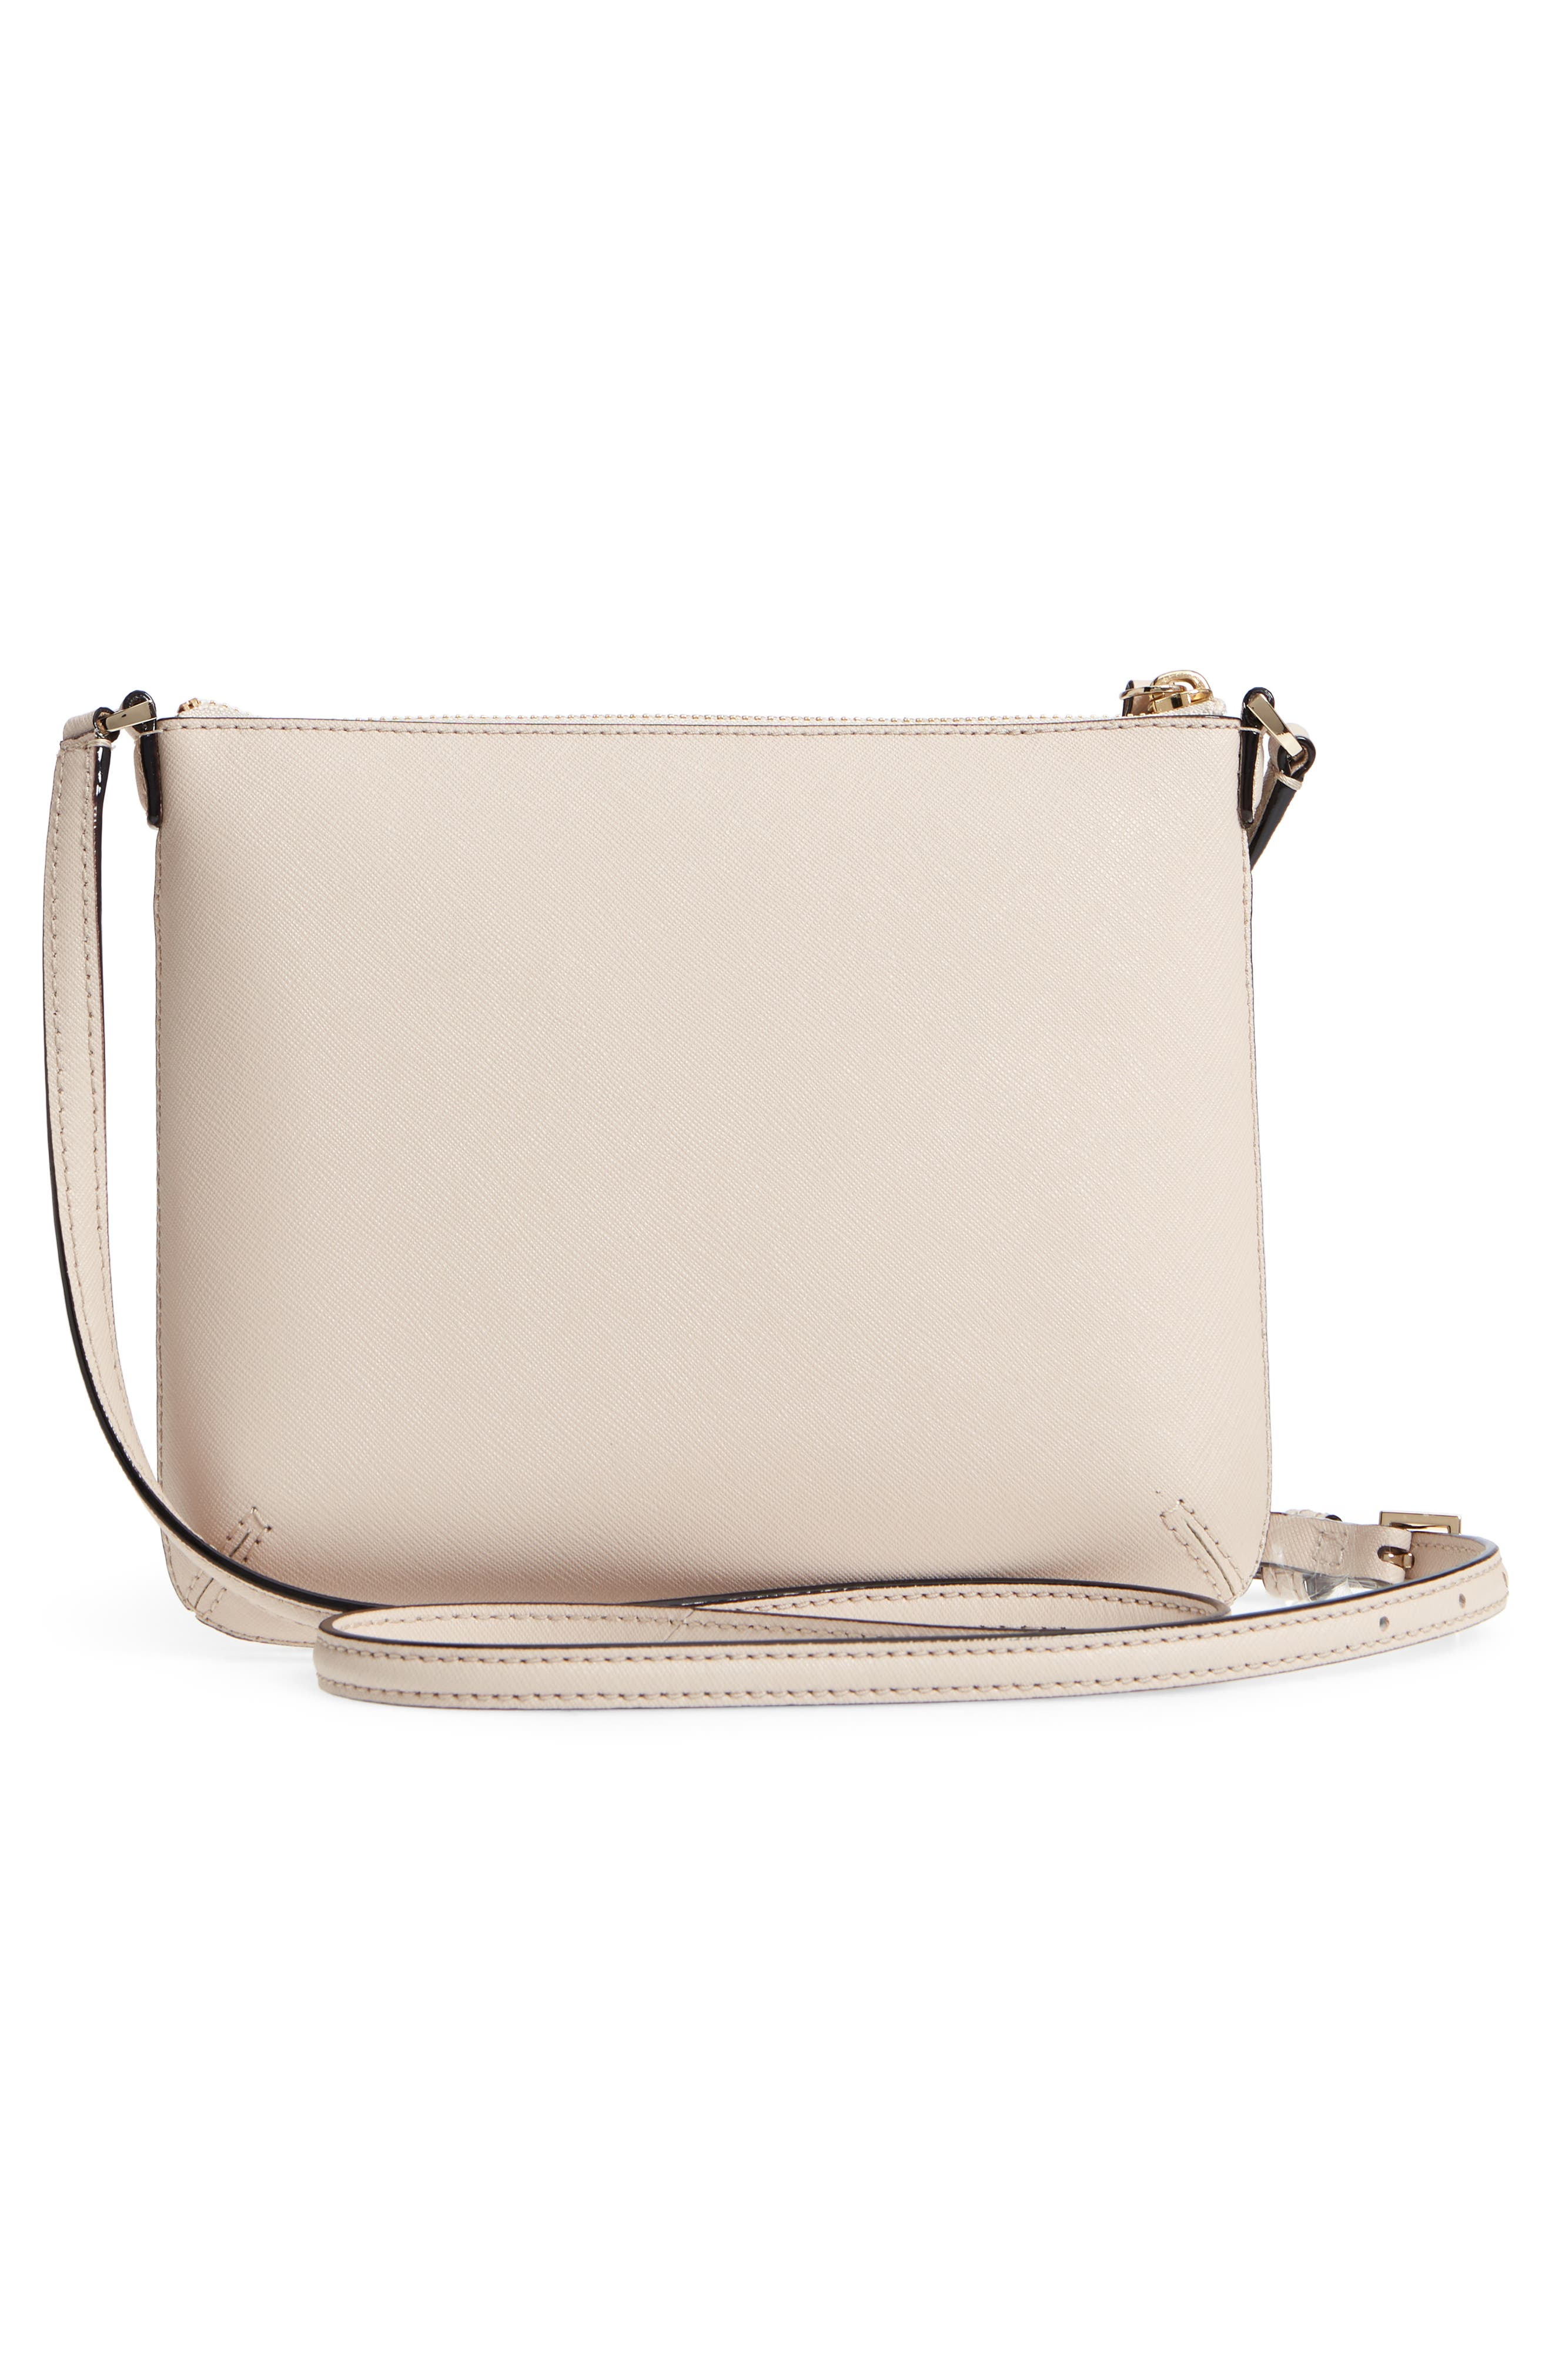 cameron street - tenley leather crossbody bag,                             Alternate thumbnail 3, color,                             260